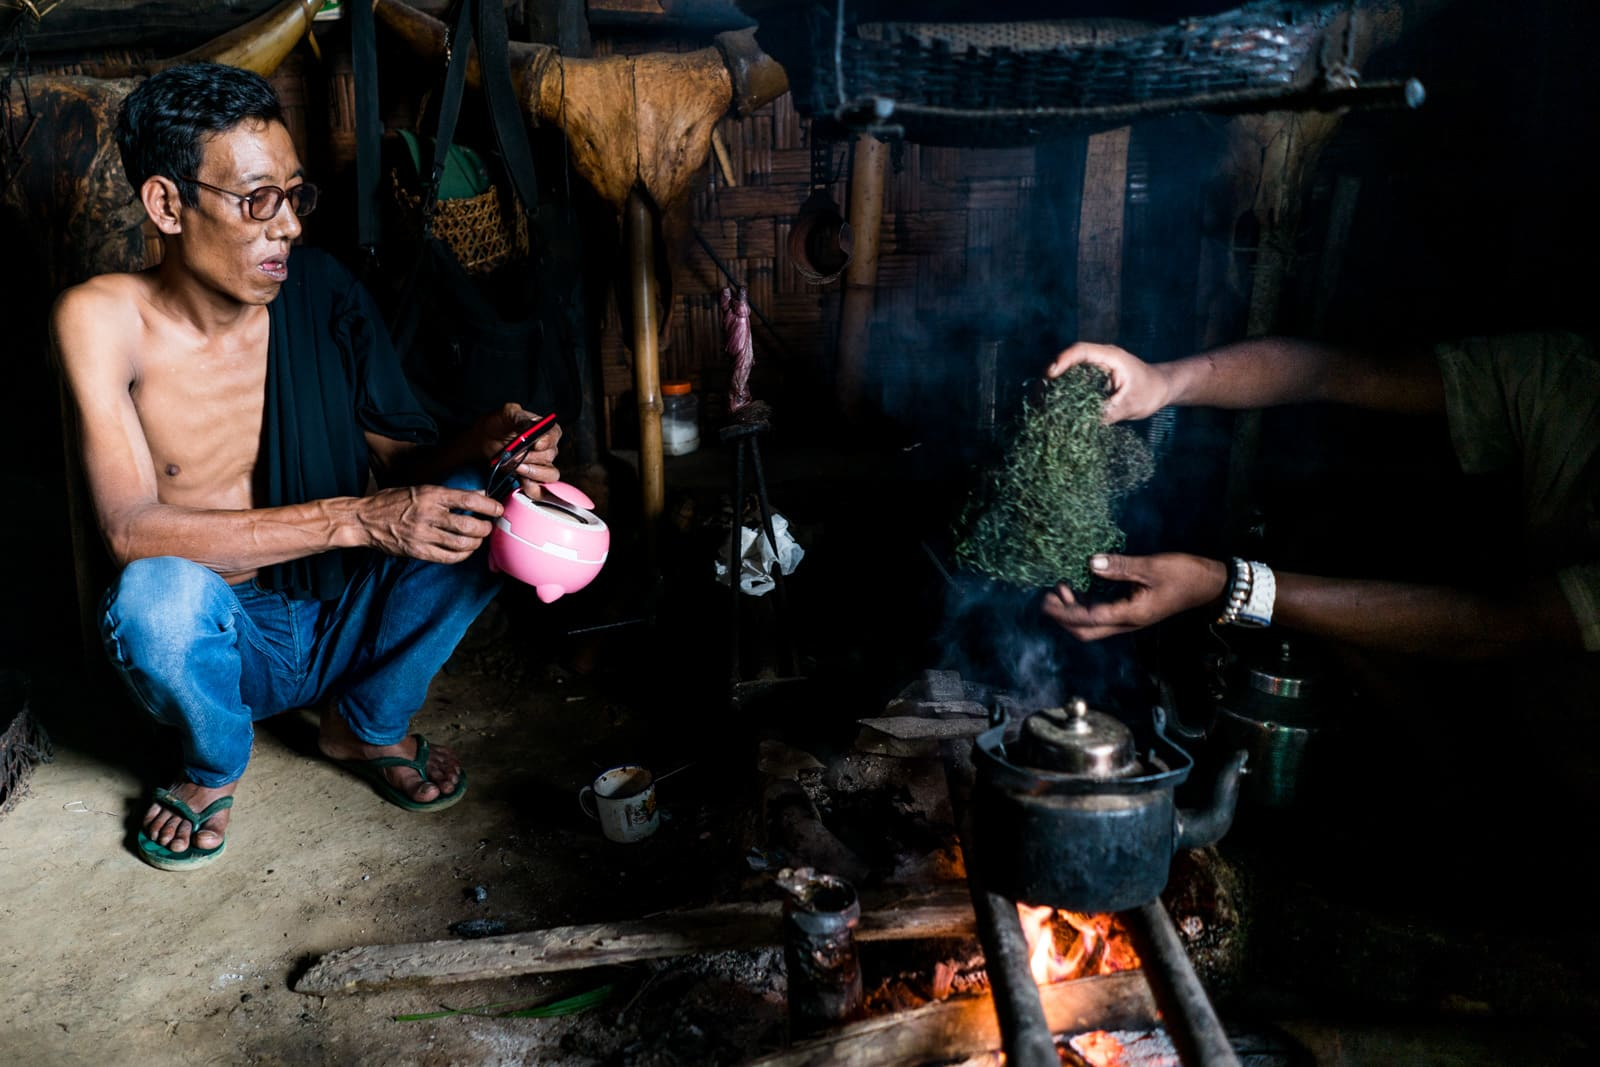 Opium and Jesus and headhunting in Longwa Village, Nagaland, India - Pink portable speakers by the fireside - Lost With Purpose